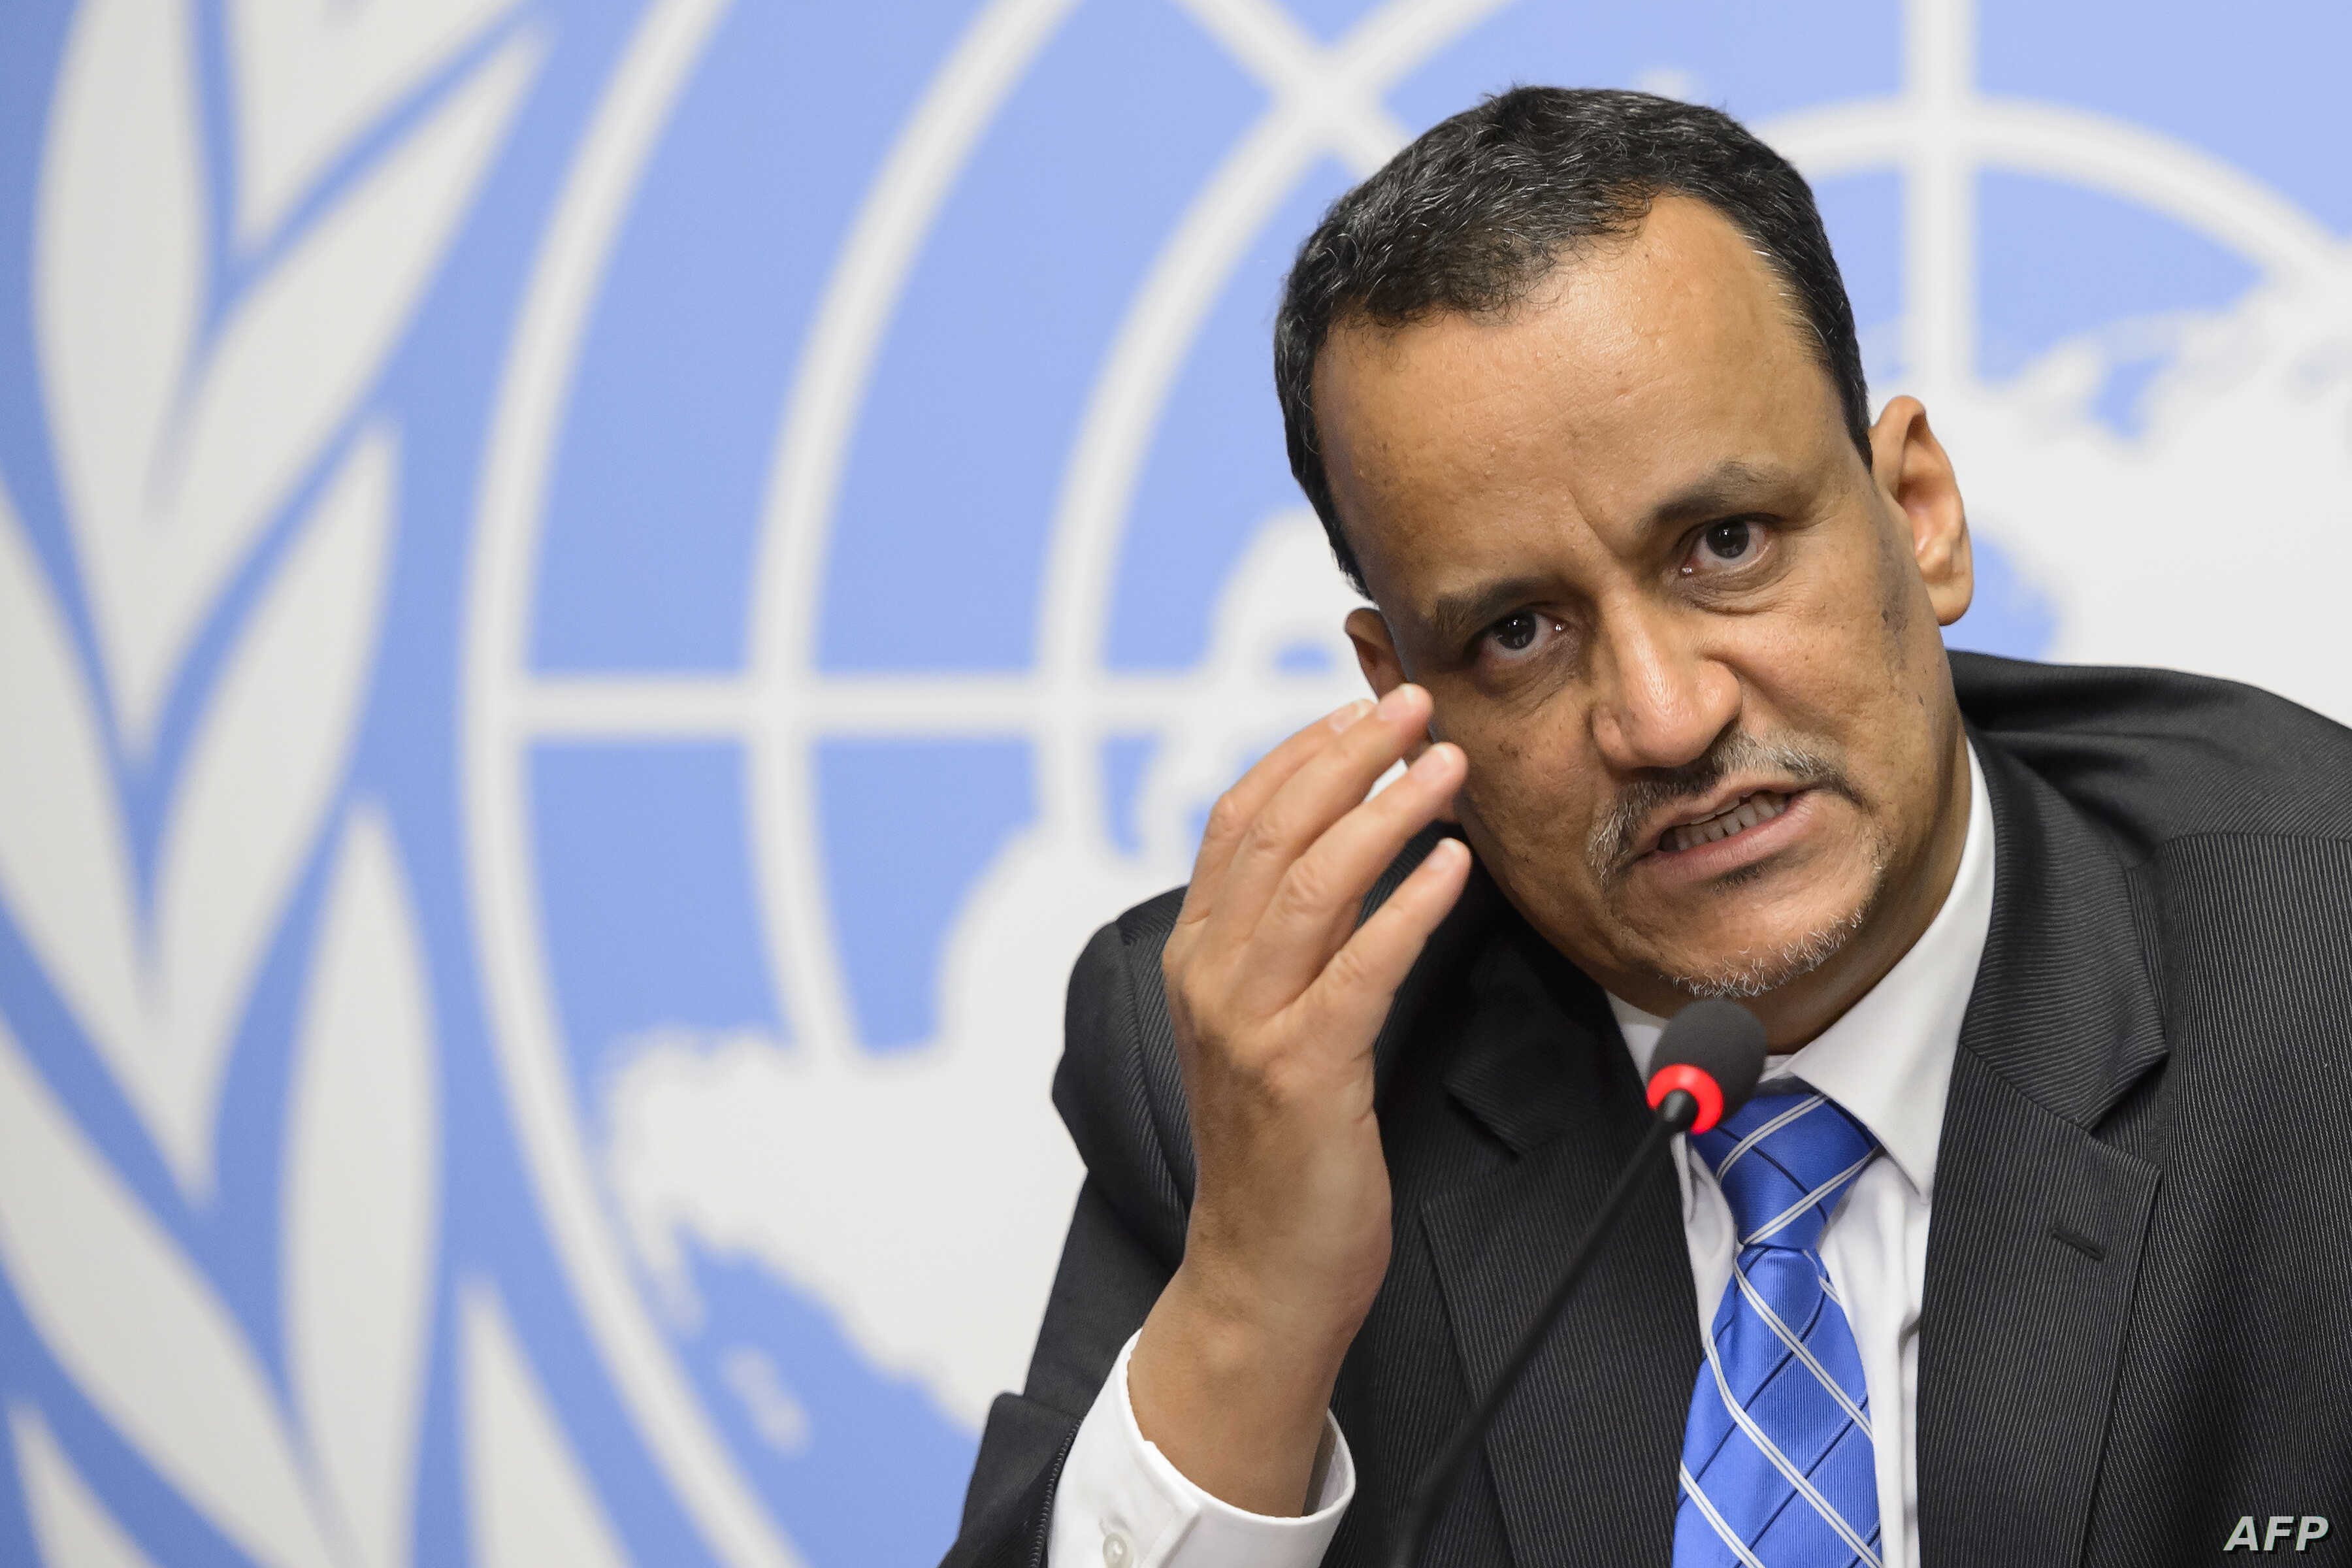 The United Nations Special Envoy for Yemen, Ismail Ould Cheikh Ahmed gestures during a press conference after the peace talks on Yemen, on June 19, 2015 at the UN offices at Geneva.